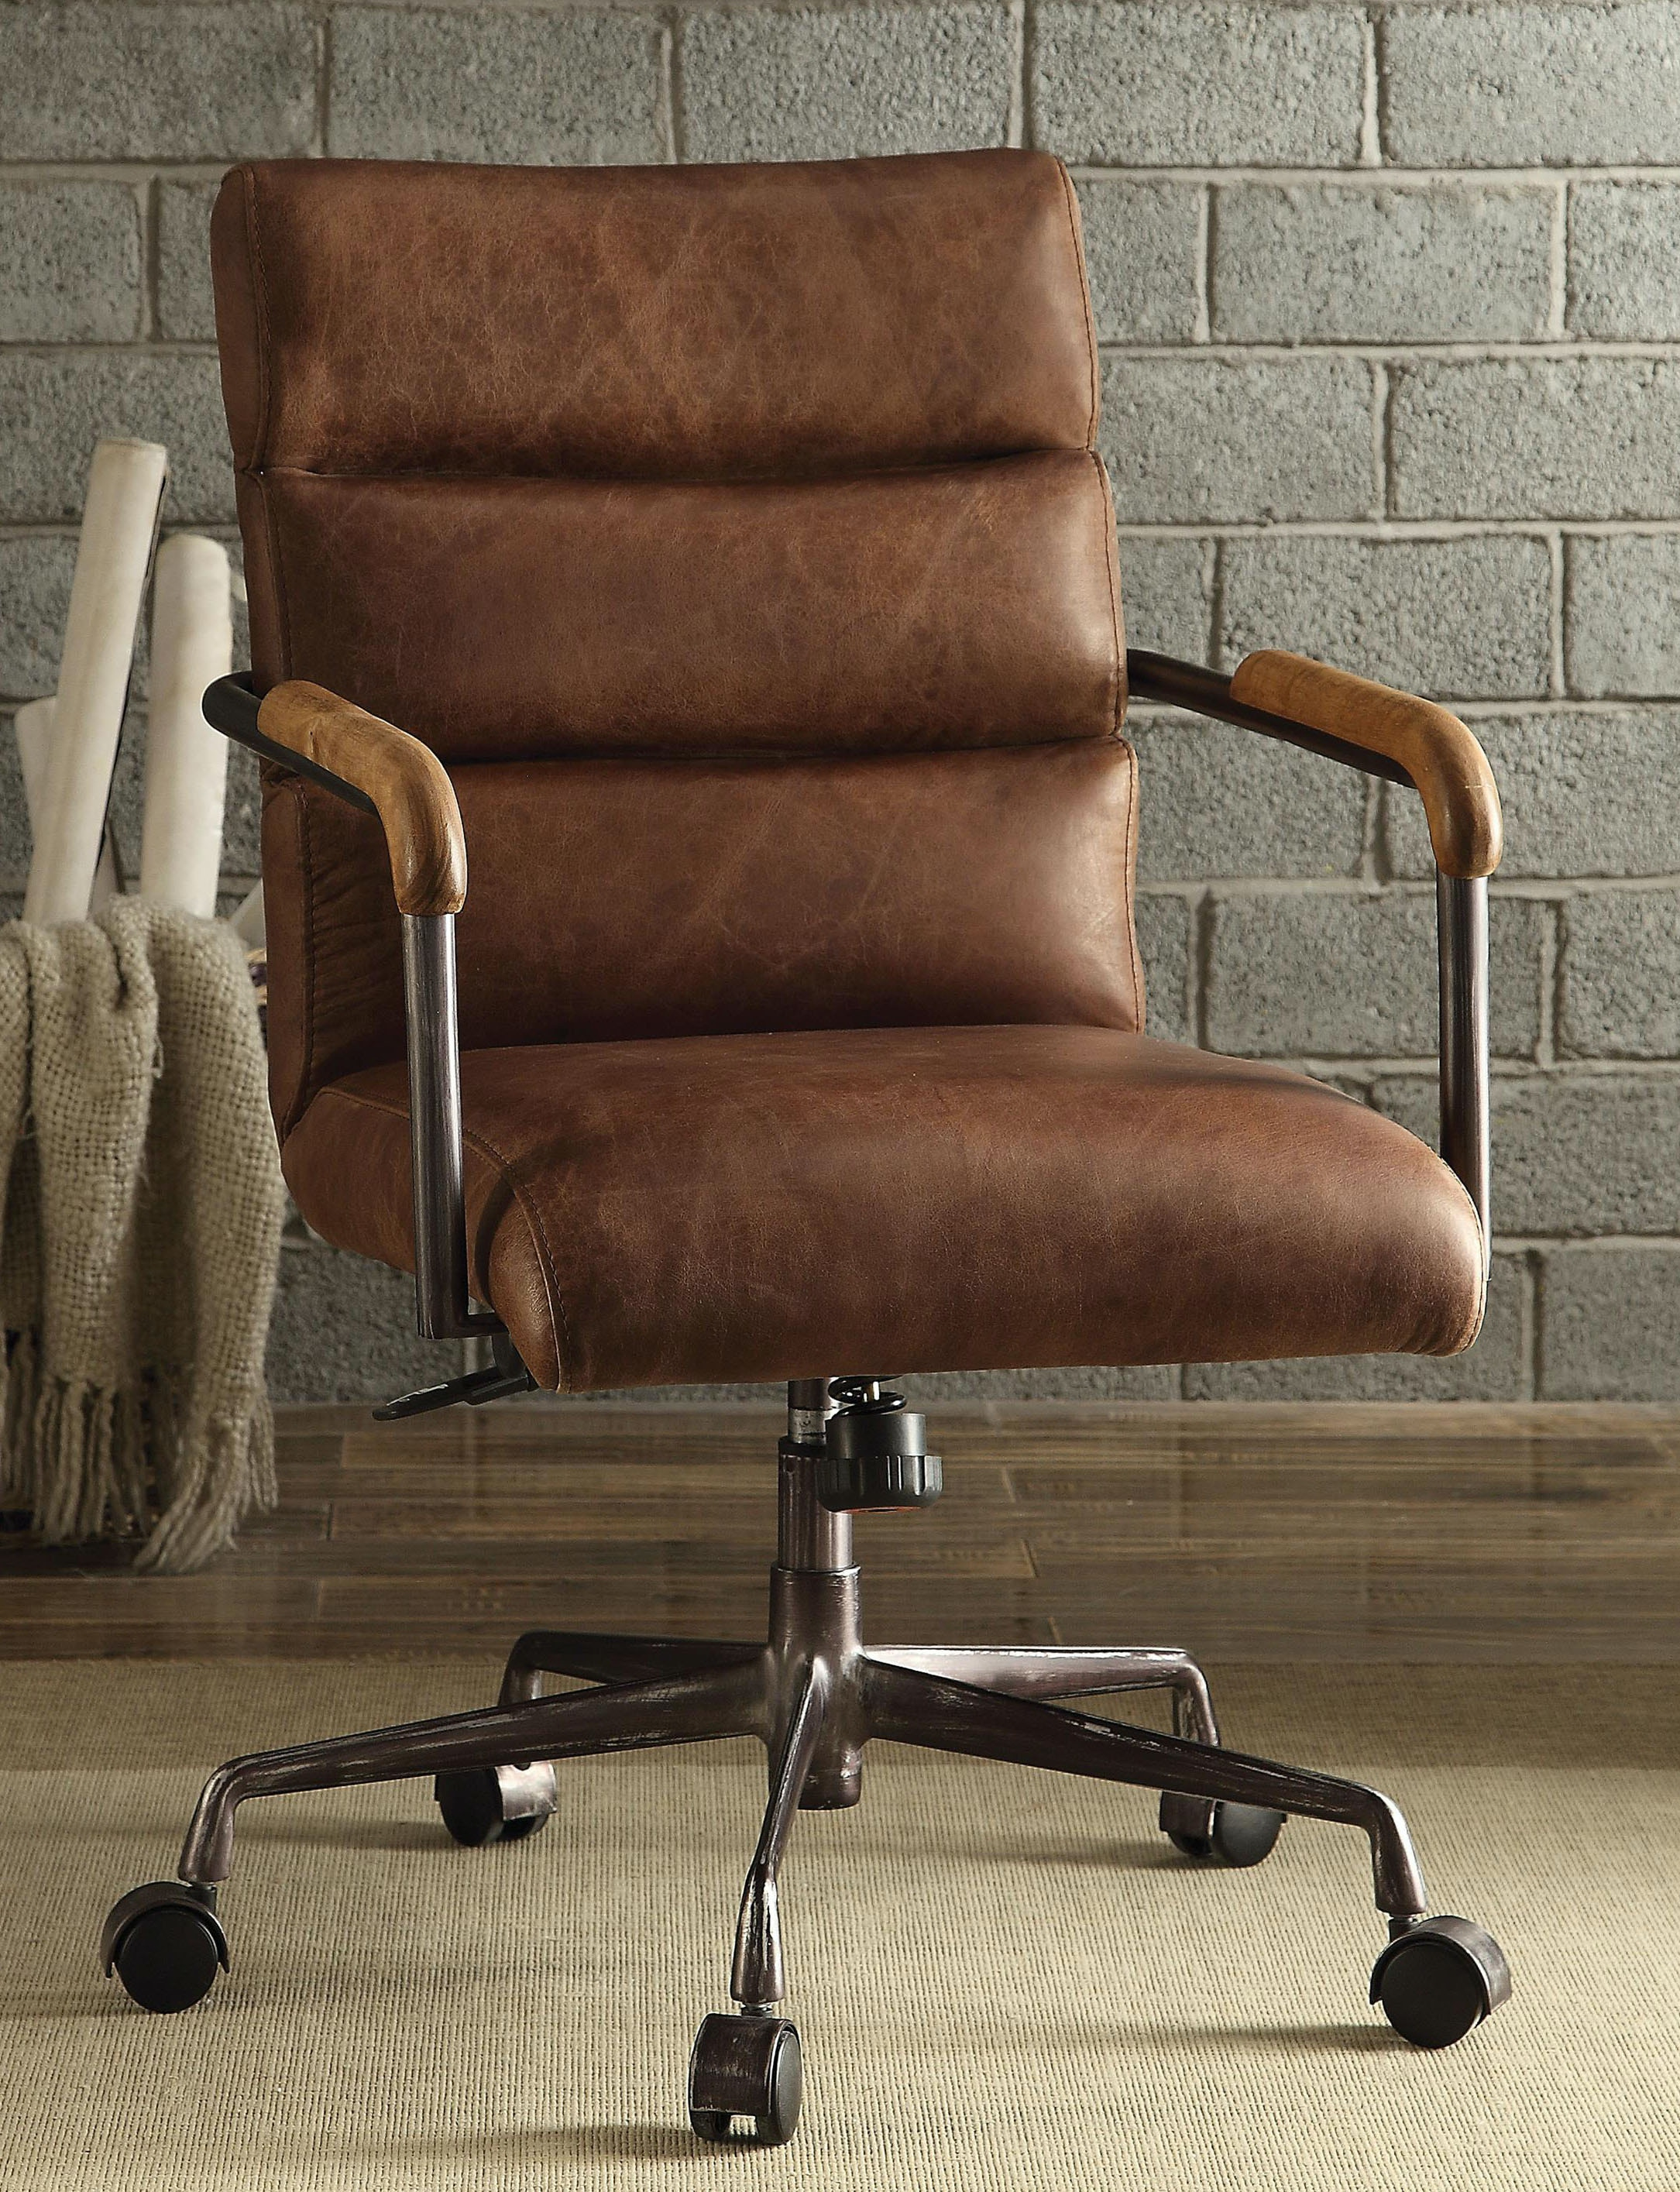 Sitting all day? The best office chairs for comfort and back support